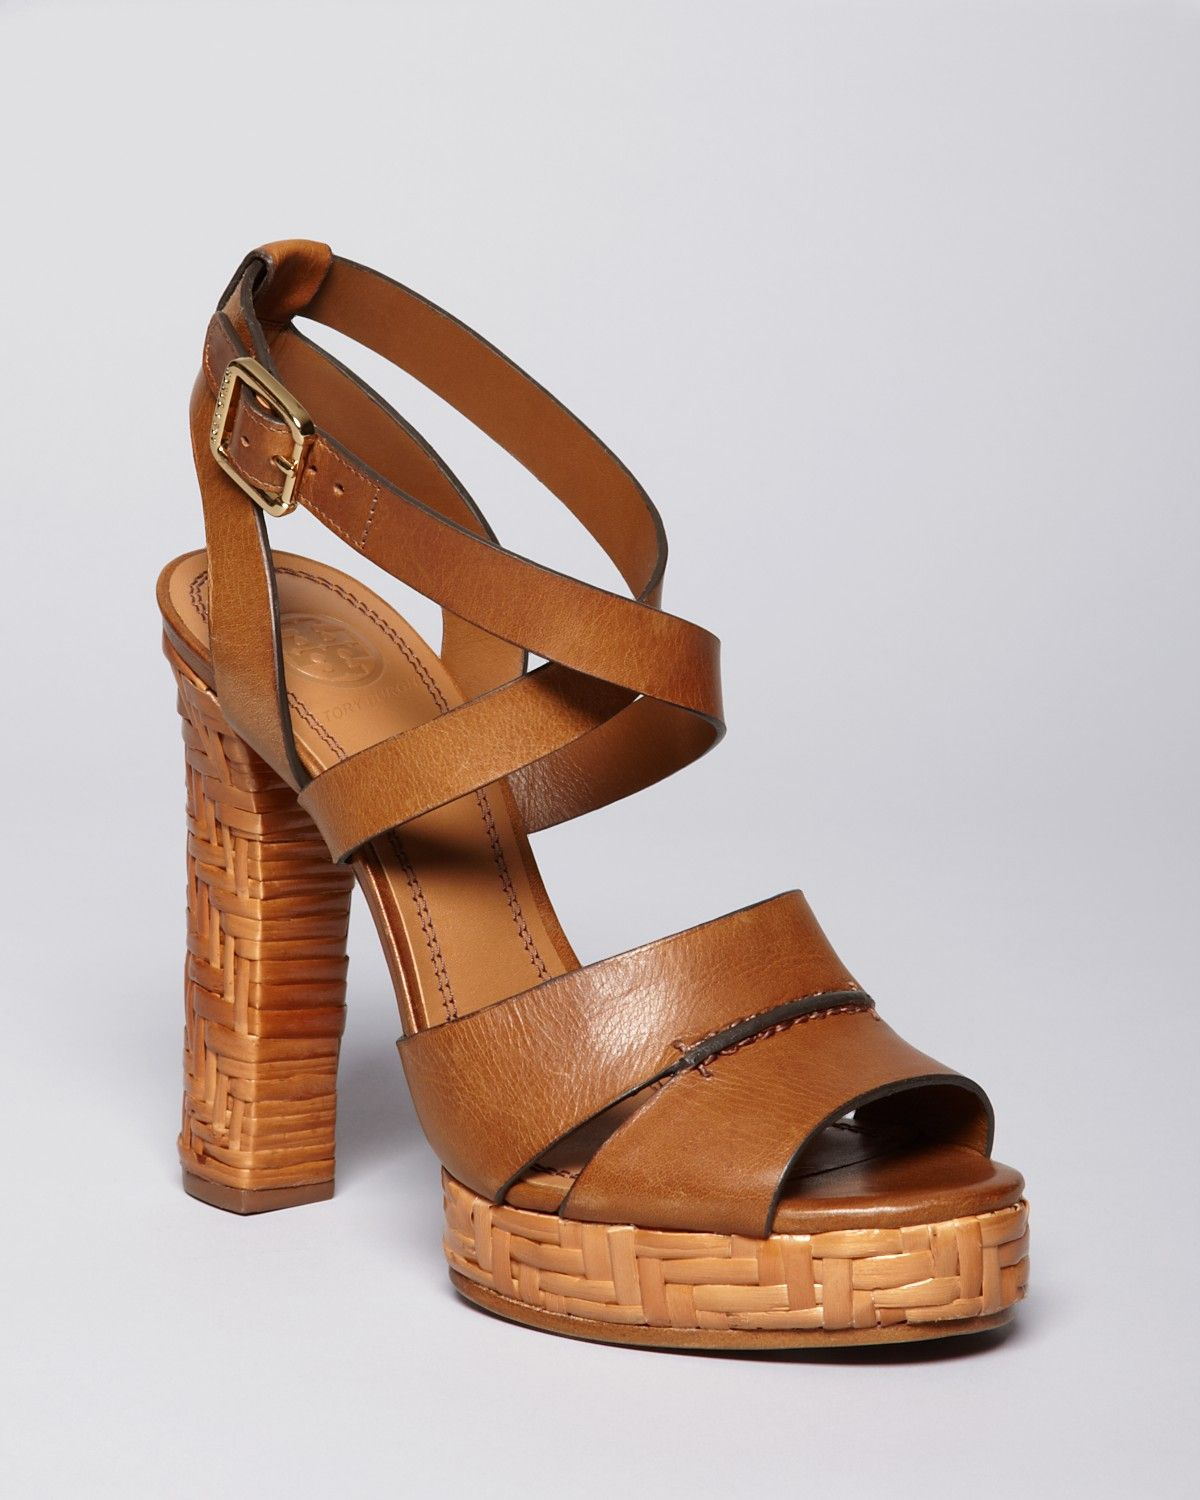 Tory Burch Vanetta Leather Sandals wholesale price 2014 online blEFf